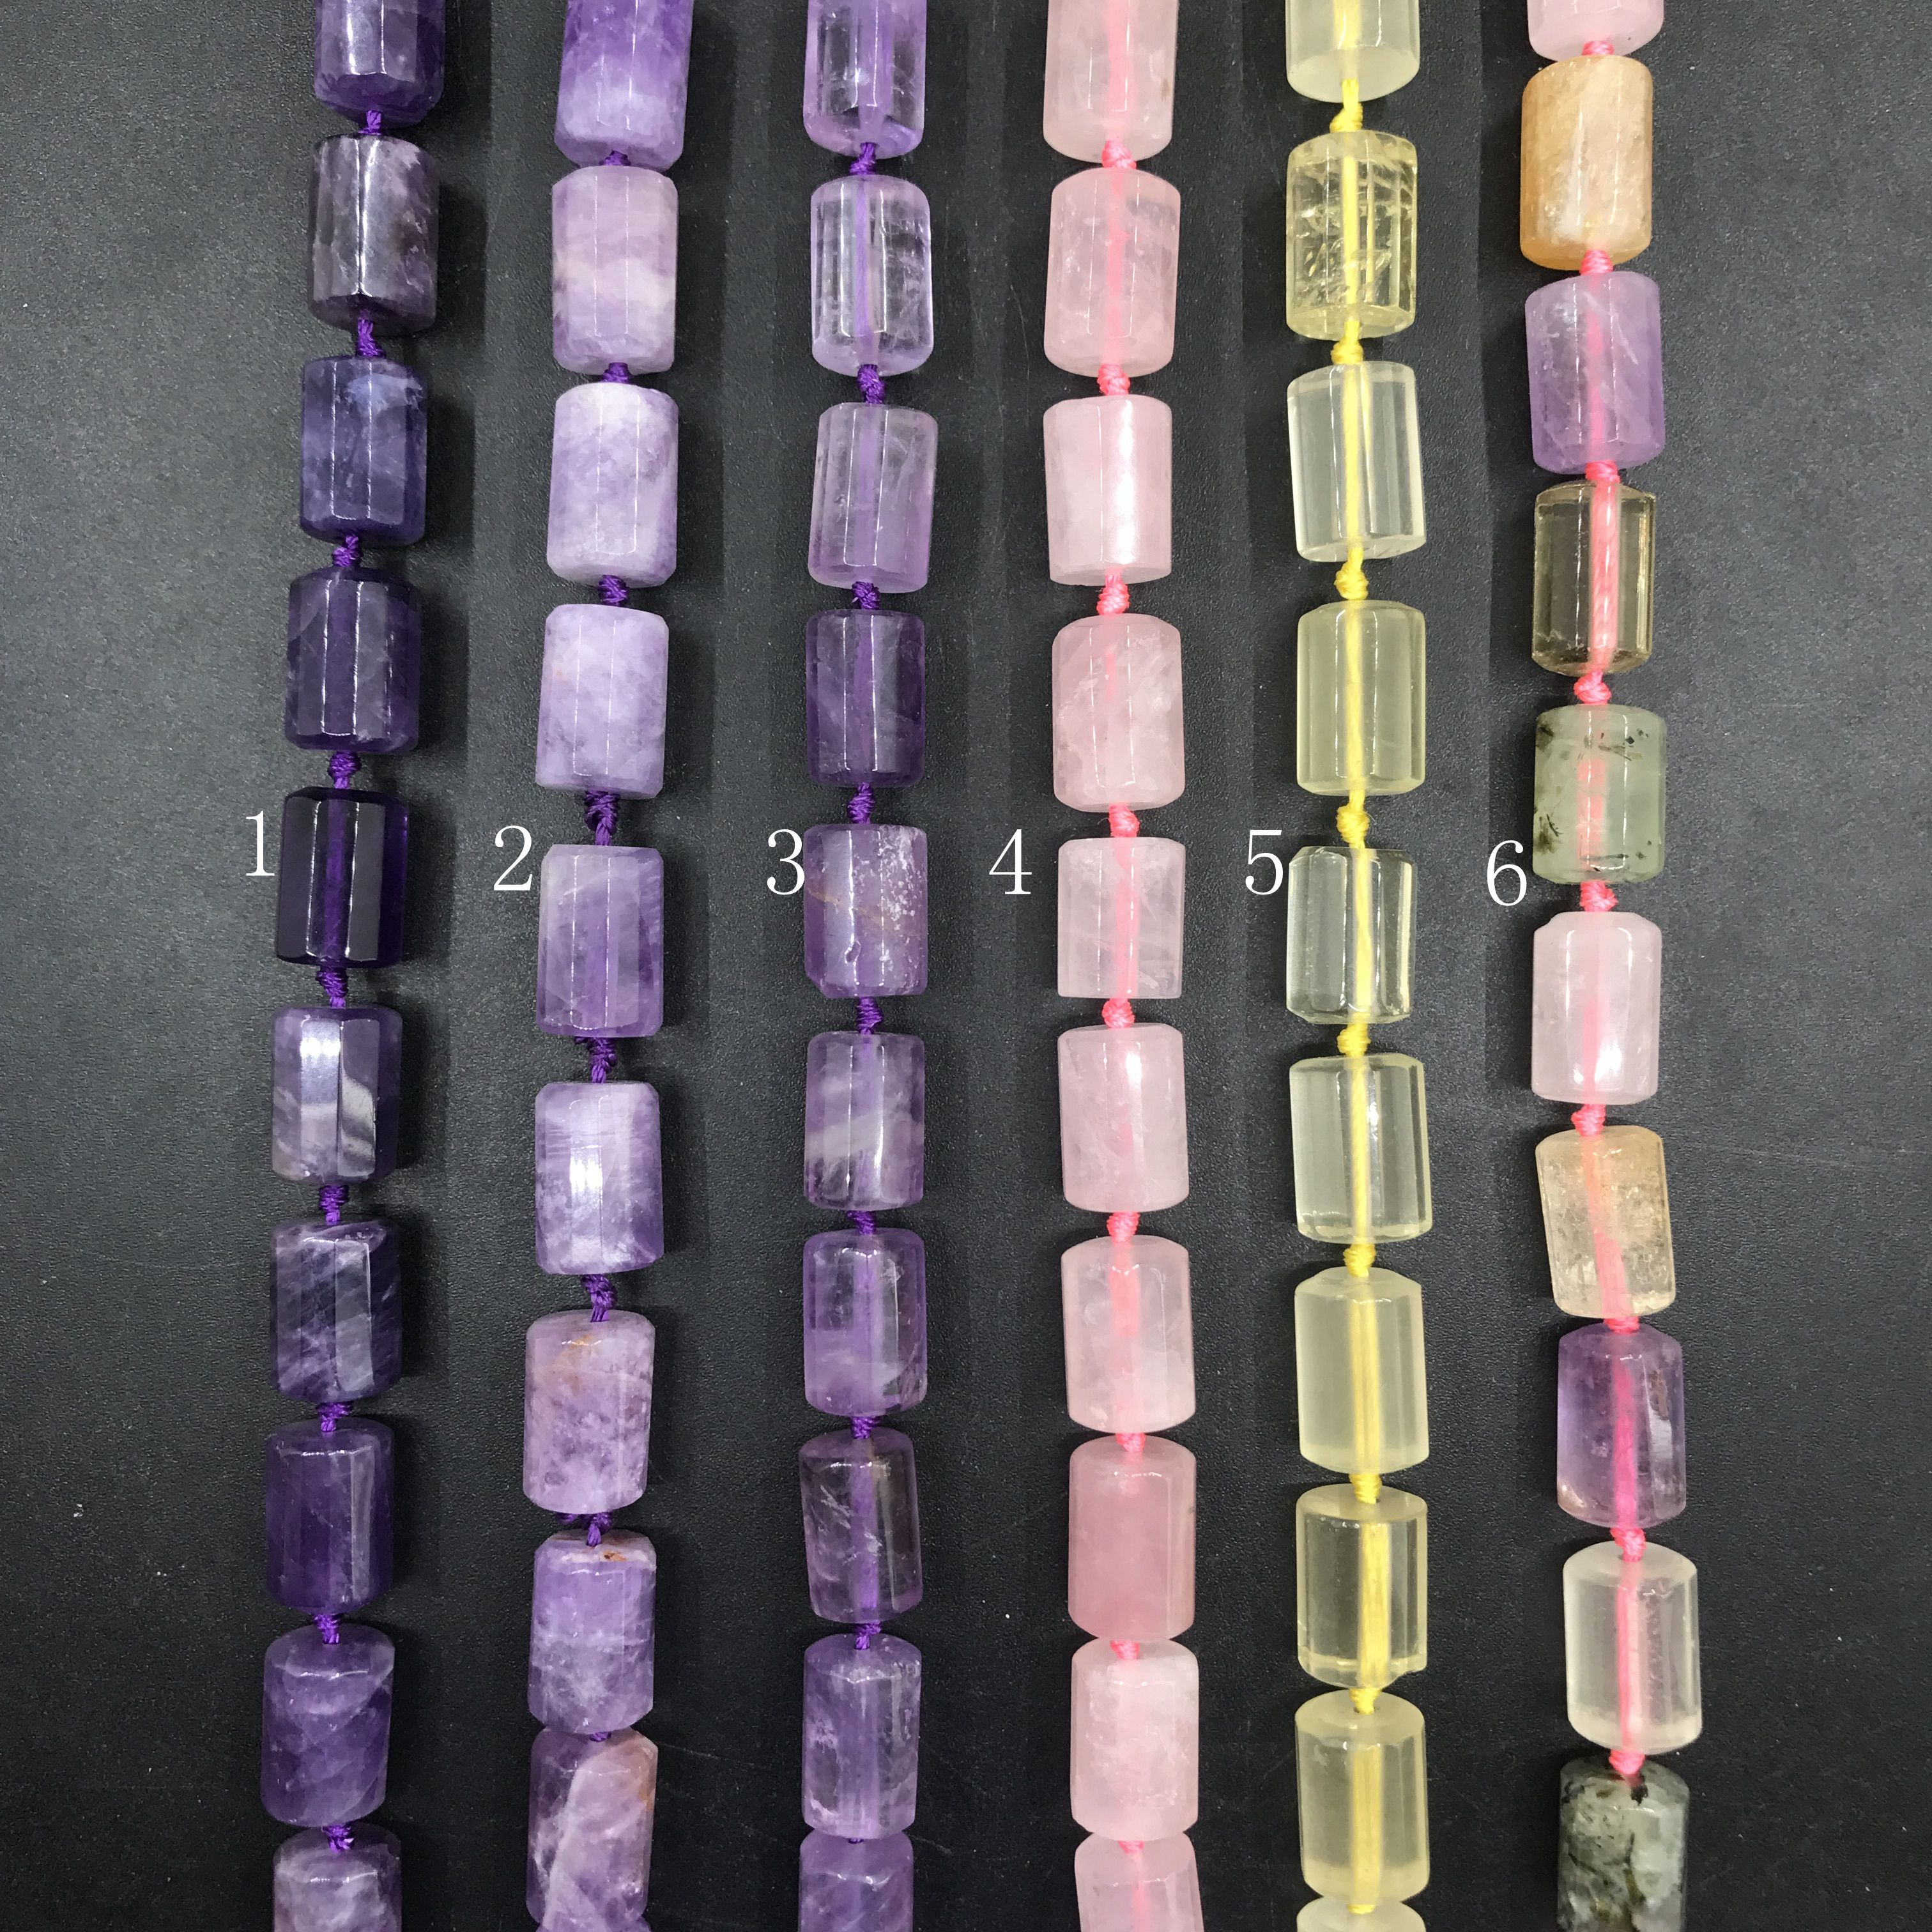 20pcs strand 6 Stone Choice Natural Crystal Faceted Tube Cylinder Nugget Pendant Beads Amethysts Rose Lemon Quartz Jewelry Bulk in Beads from Jewelry Accessories